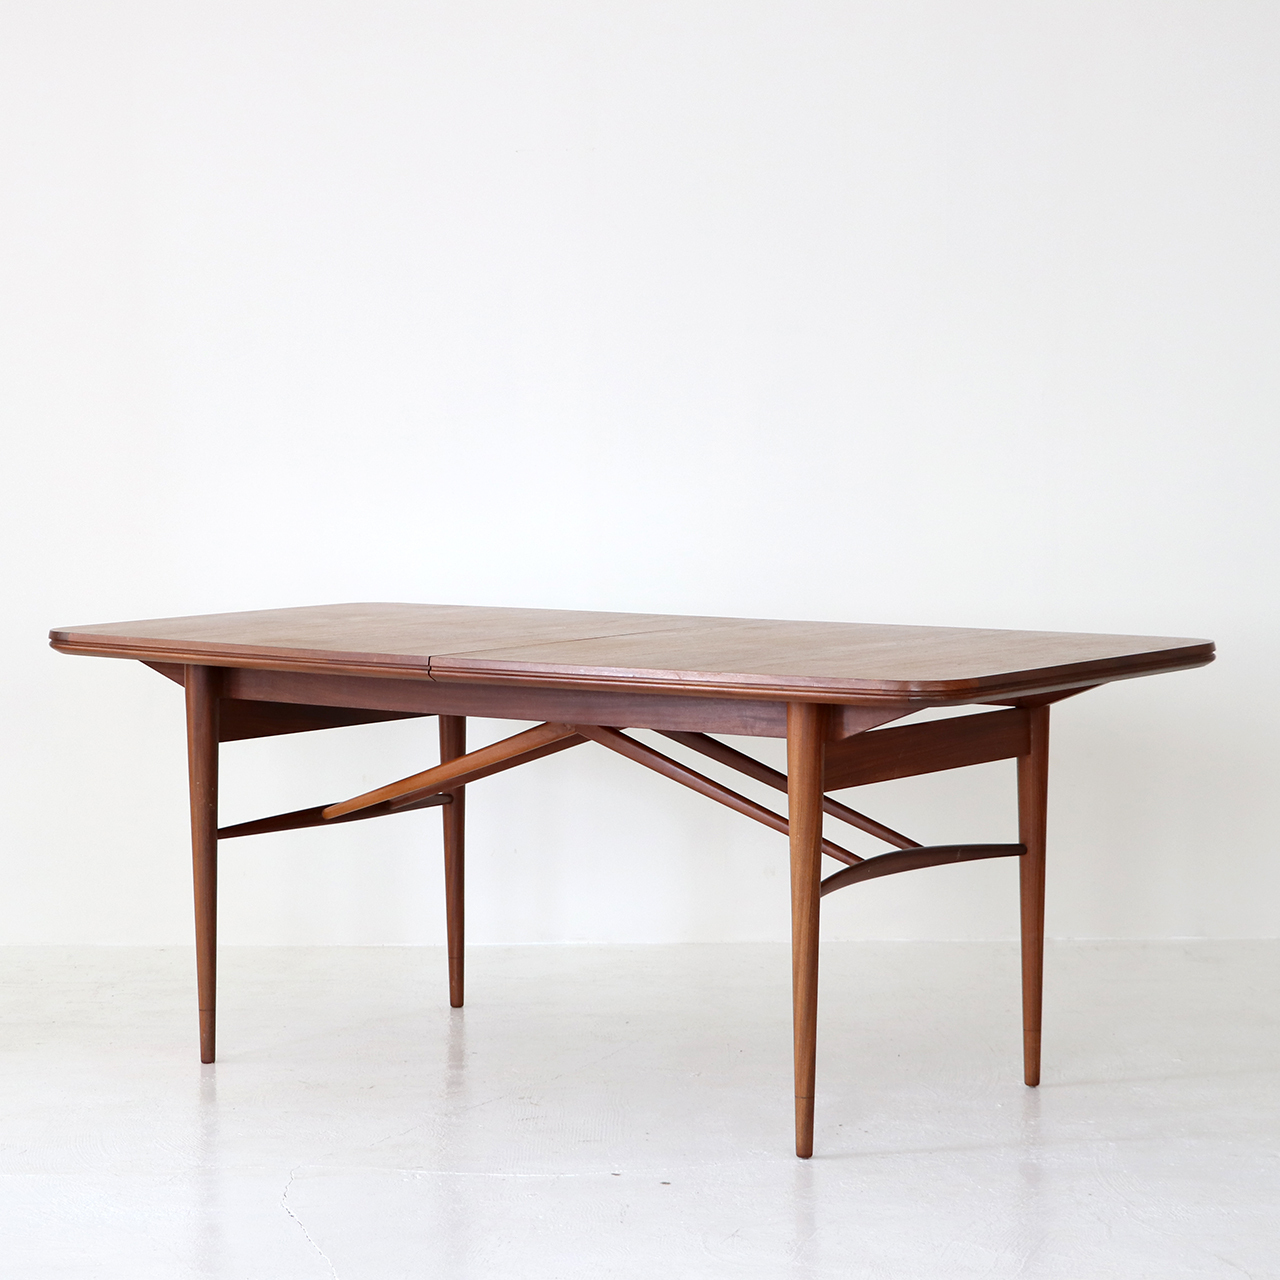 Dining table / Robert Heritage for Archie Shine